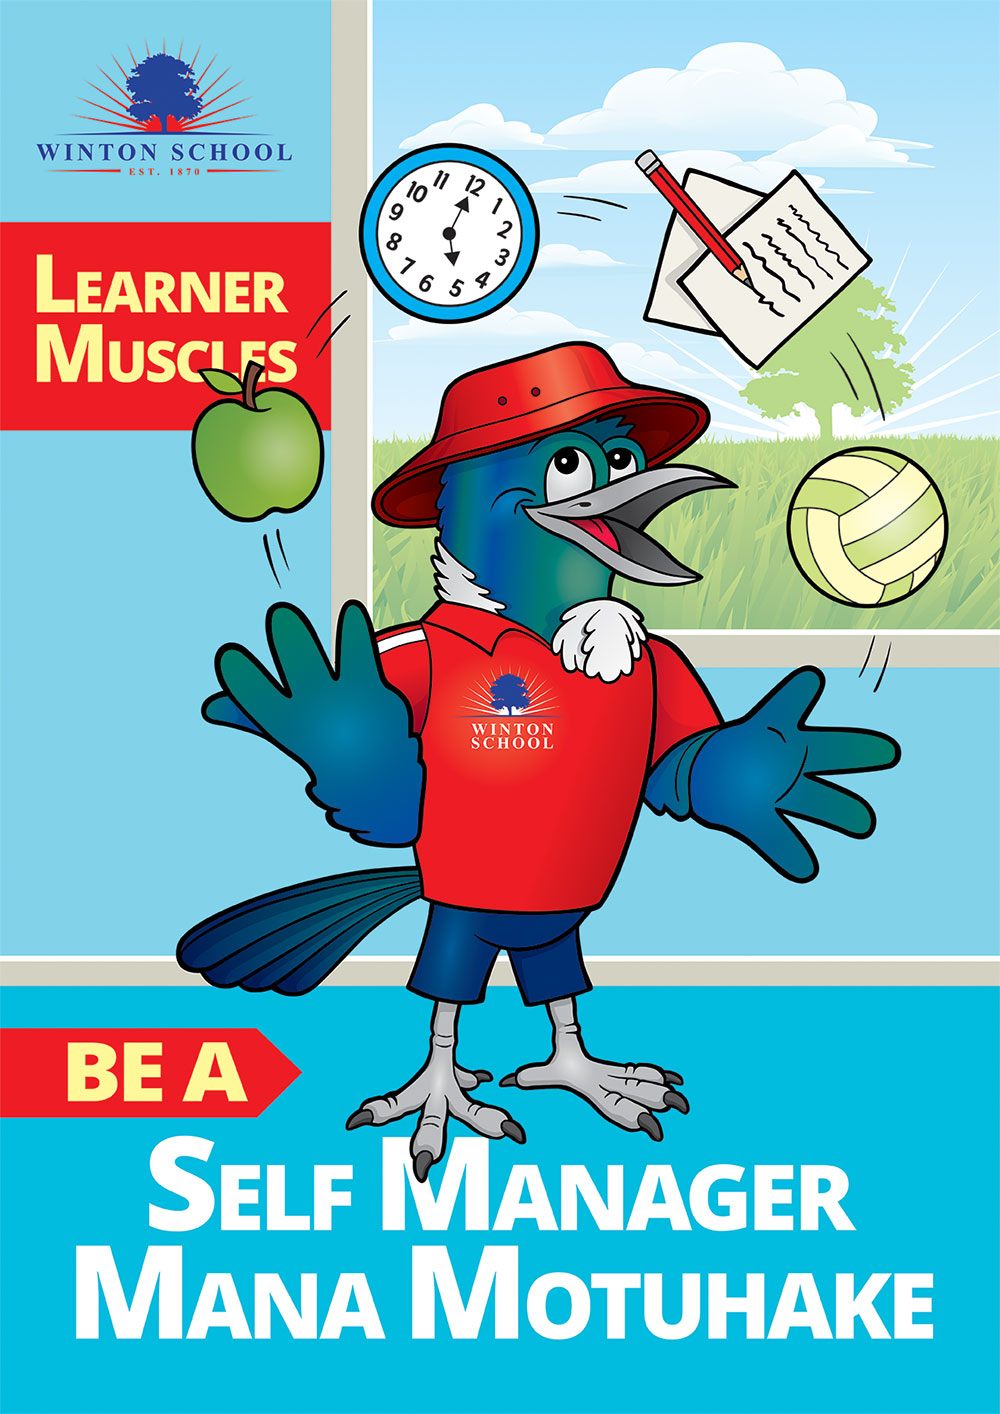 Winton School Self Manager Poster Southland NZ